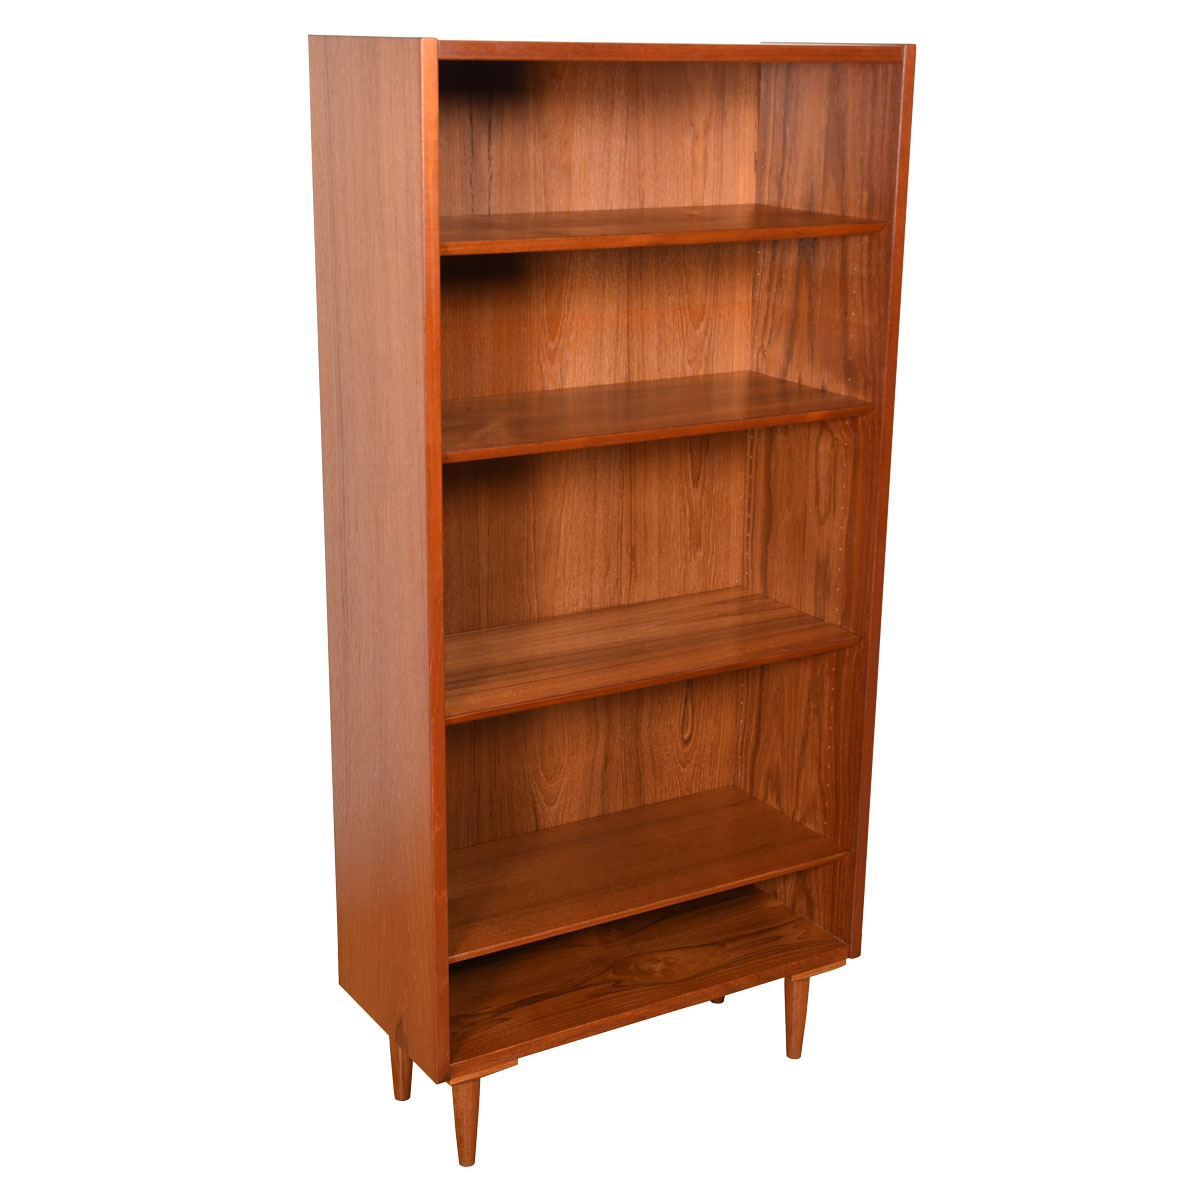 58″ Tall Danish Teak Compact Bookcase on Legs